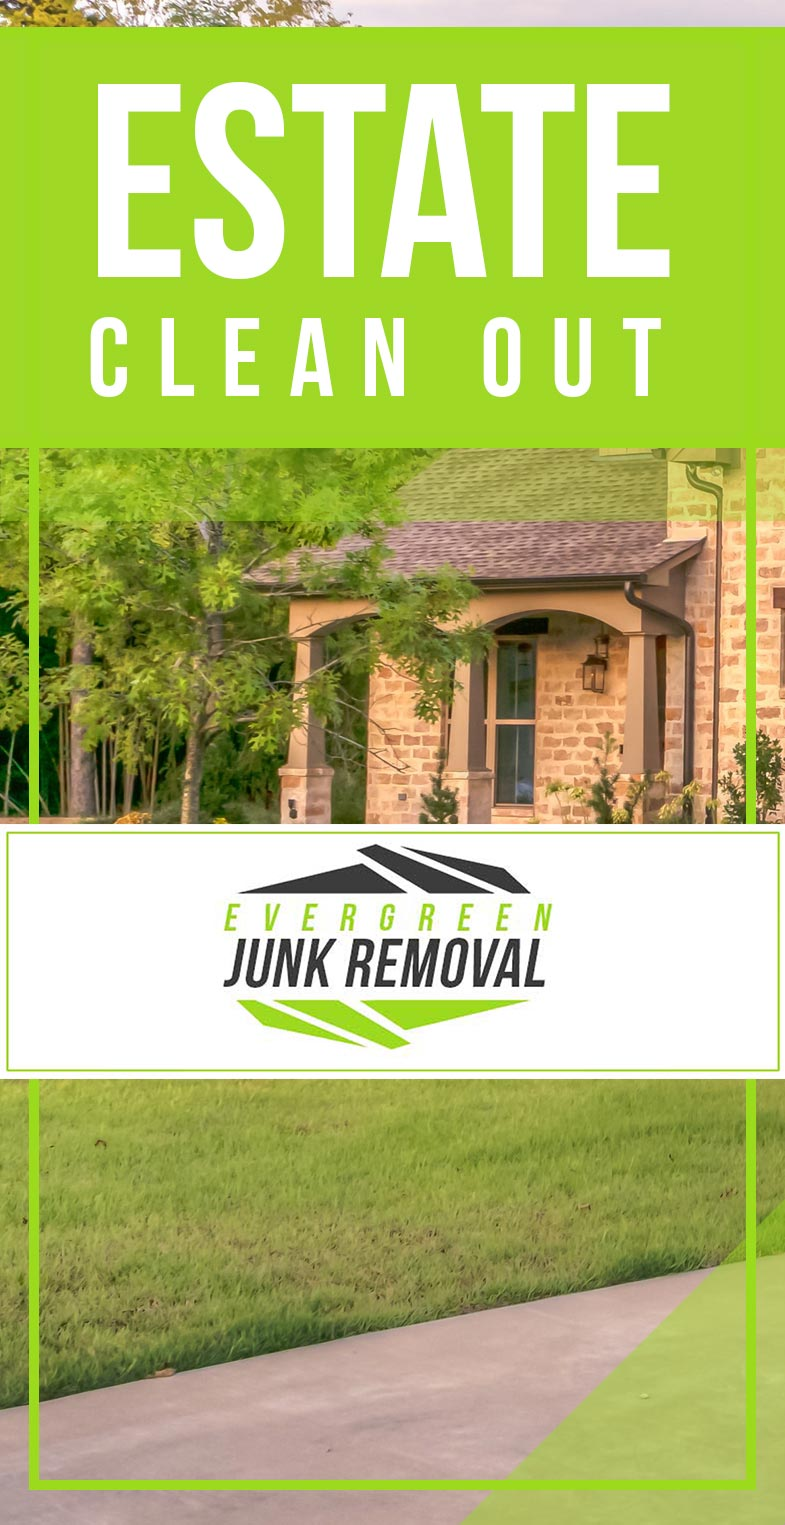 Junk Removal Palm Beach Estate Clean Out